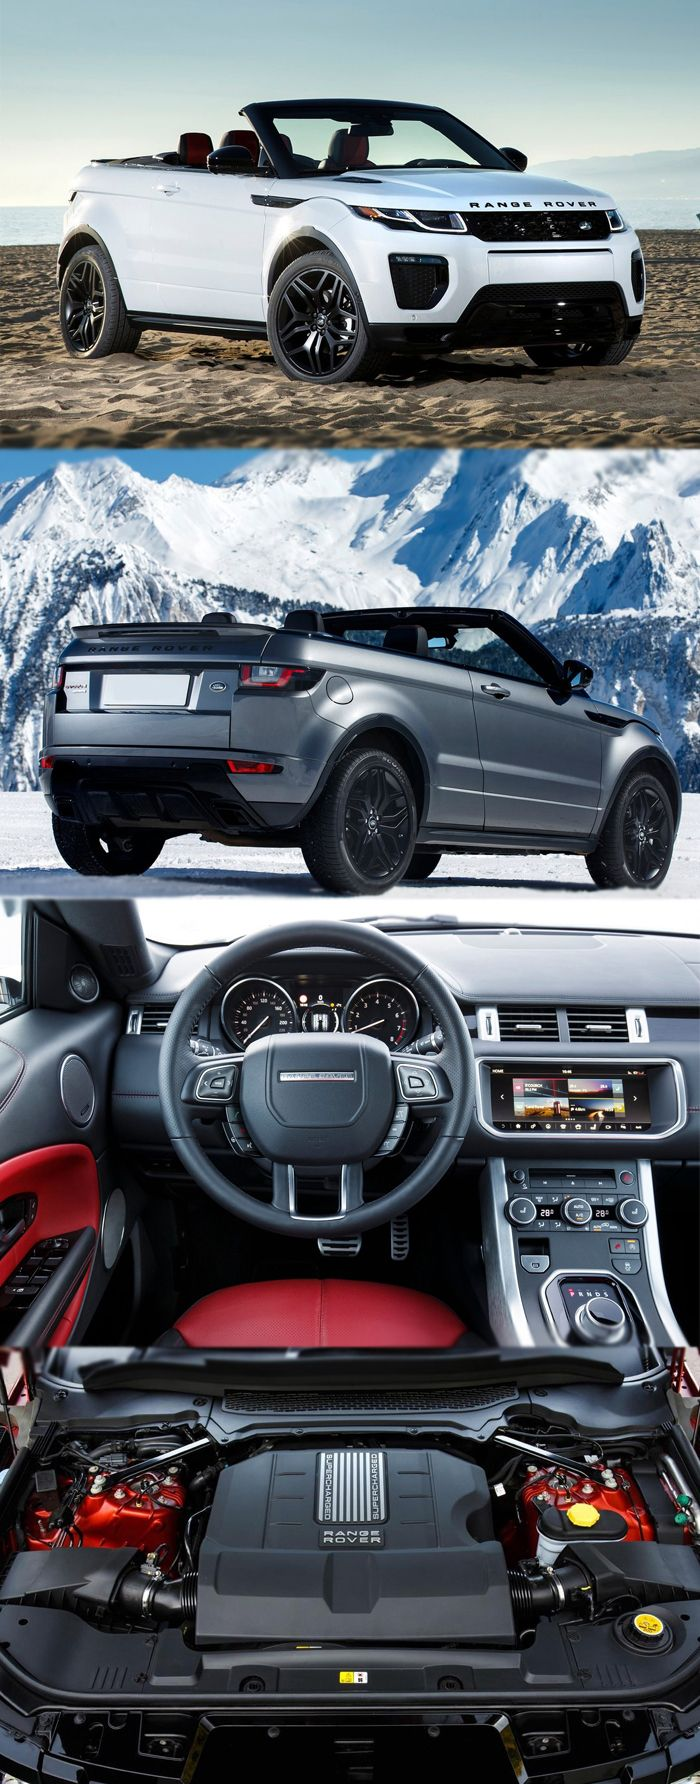 Range Rover Evoque Convertible Offers 2.0-Litre 4cyl Diesel Engine For more detail:https://mbgearboxes.wordpress.com/2016/05/12/range-rover-evoque-convertible-offers-2-0-litre-4cyl-diesel-engine/